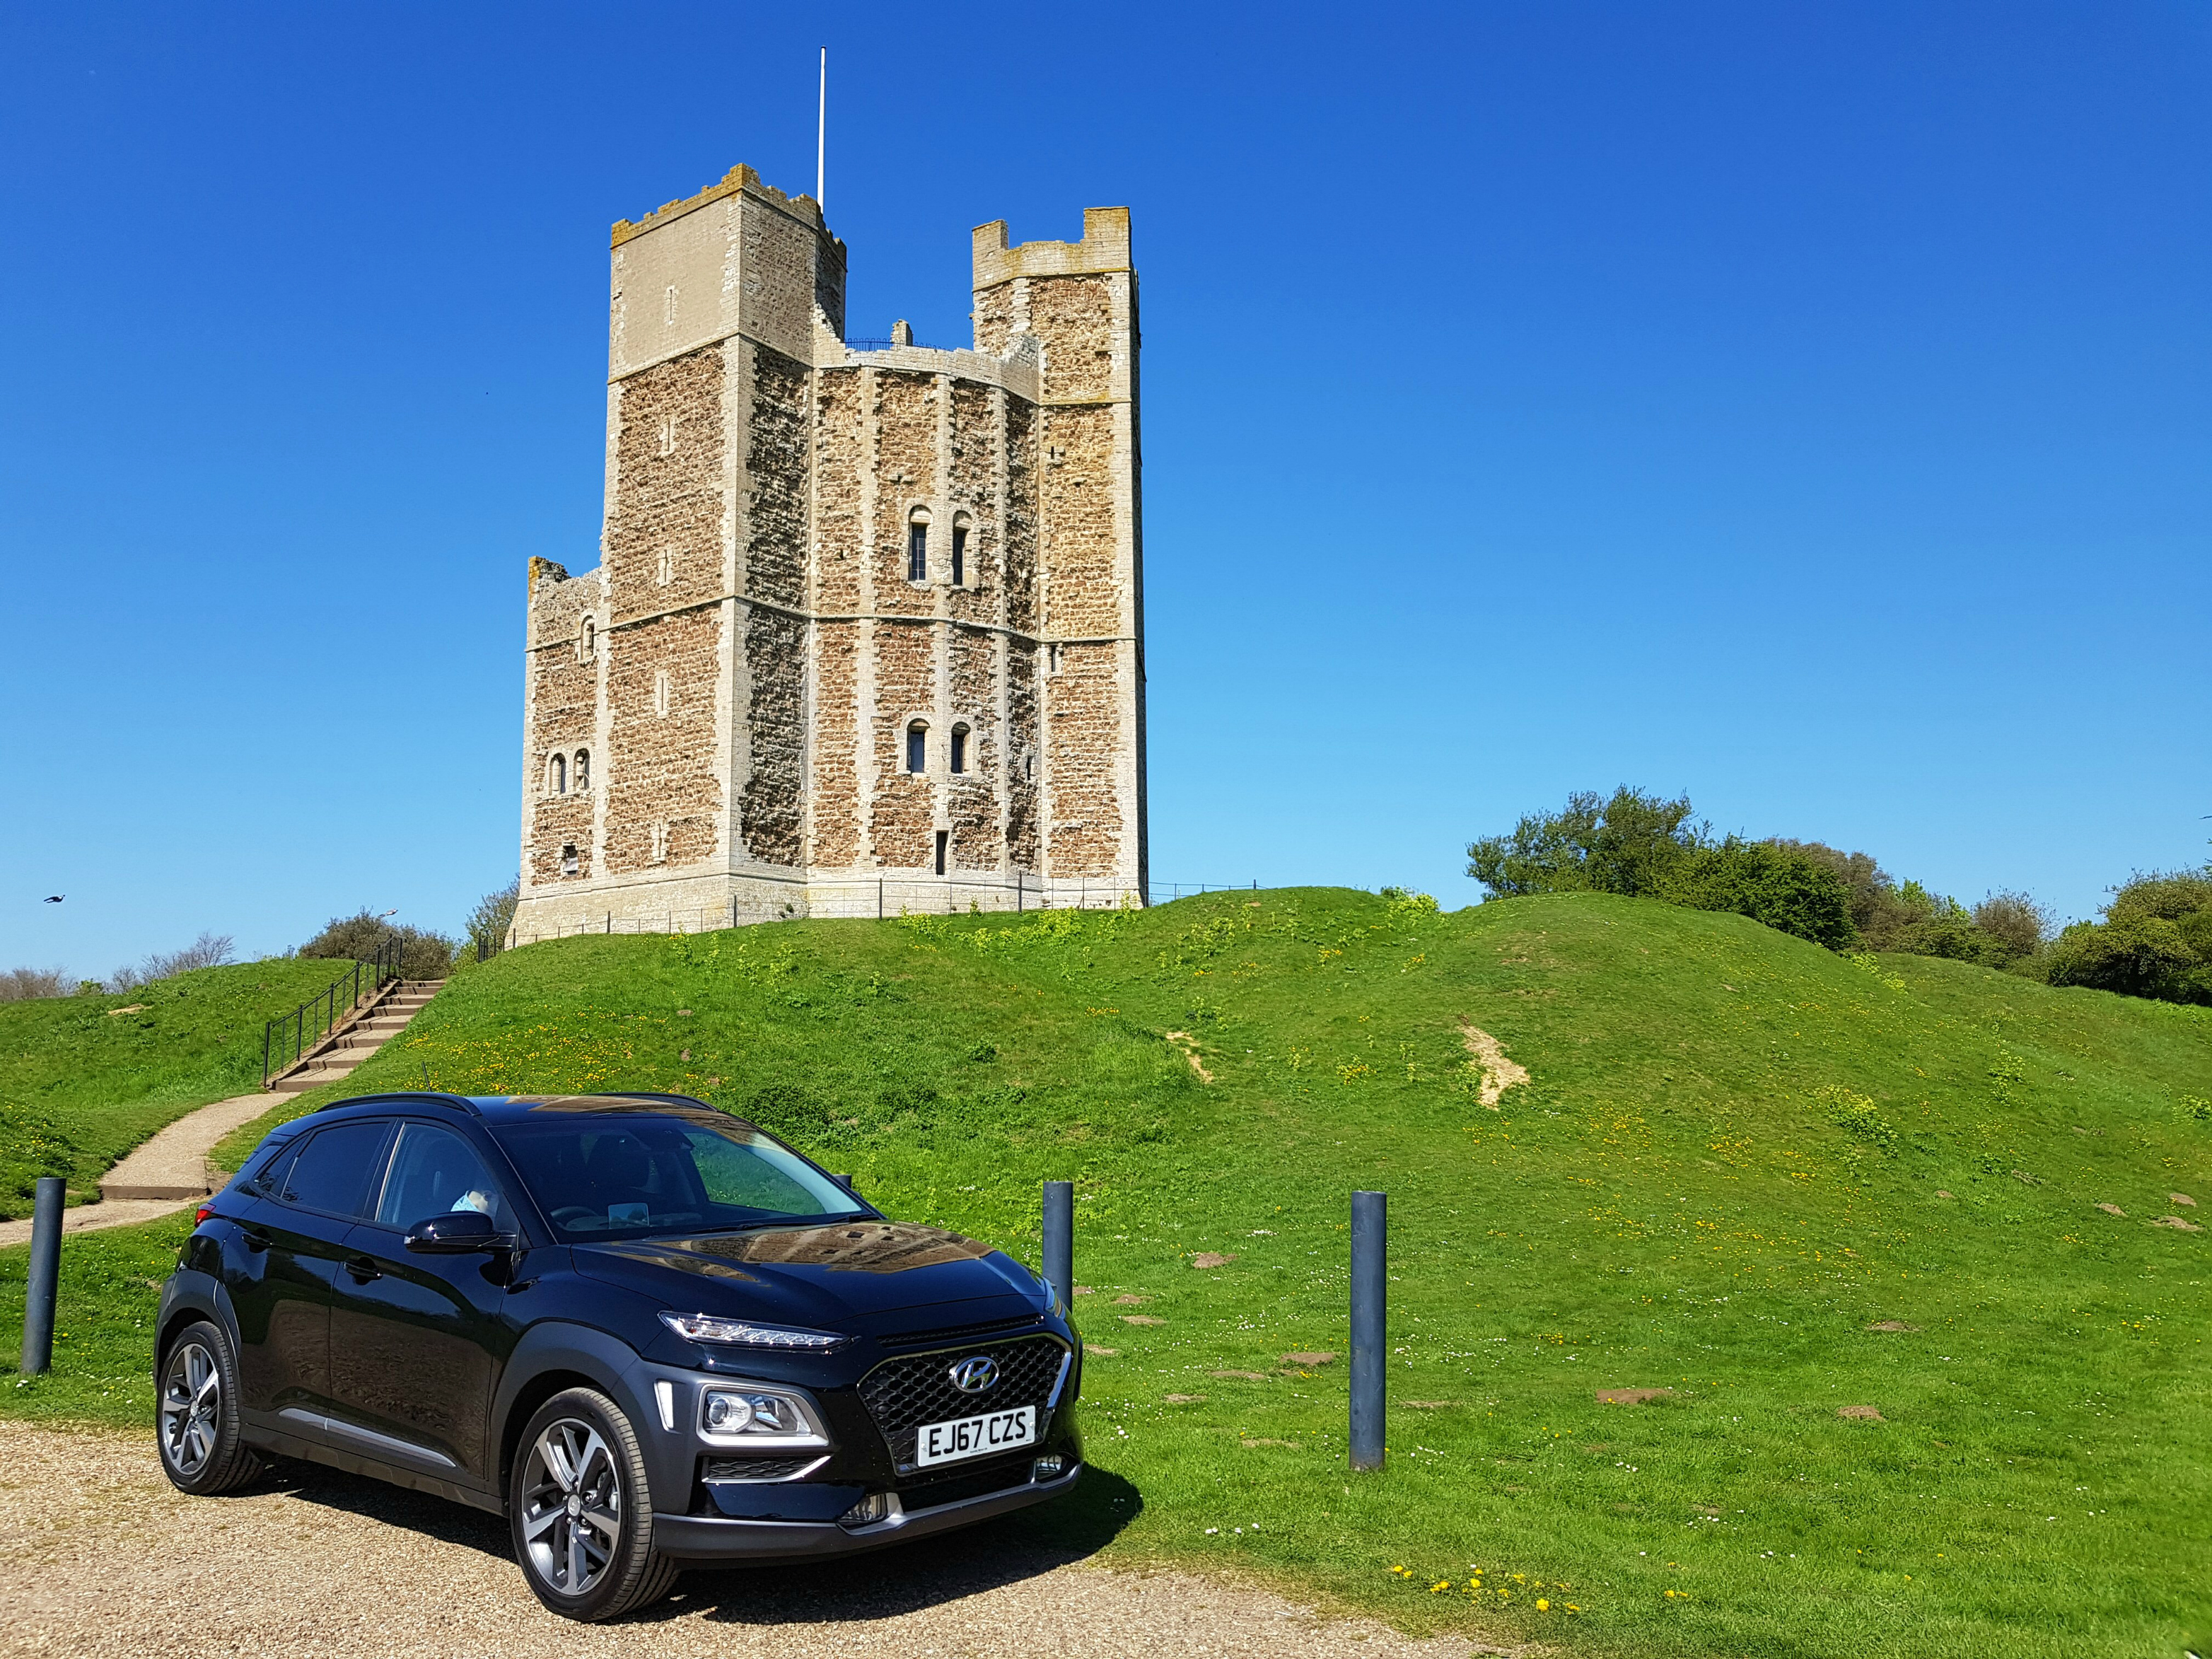 Stopping at Orford Castle in Suffolk on our Hyundai Adventure road trip - part of my essential family travel reading this month